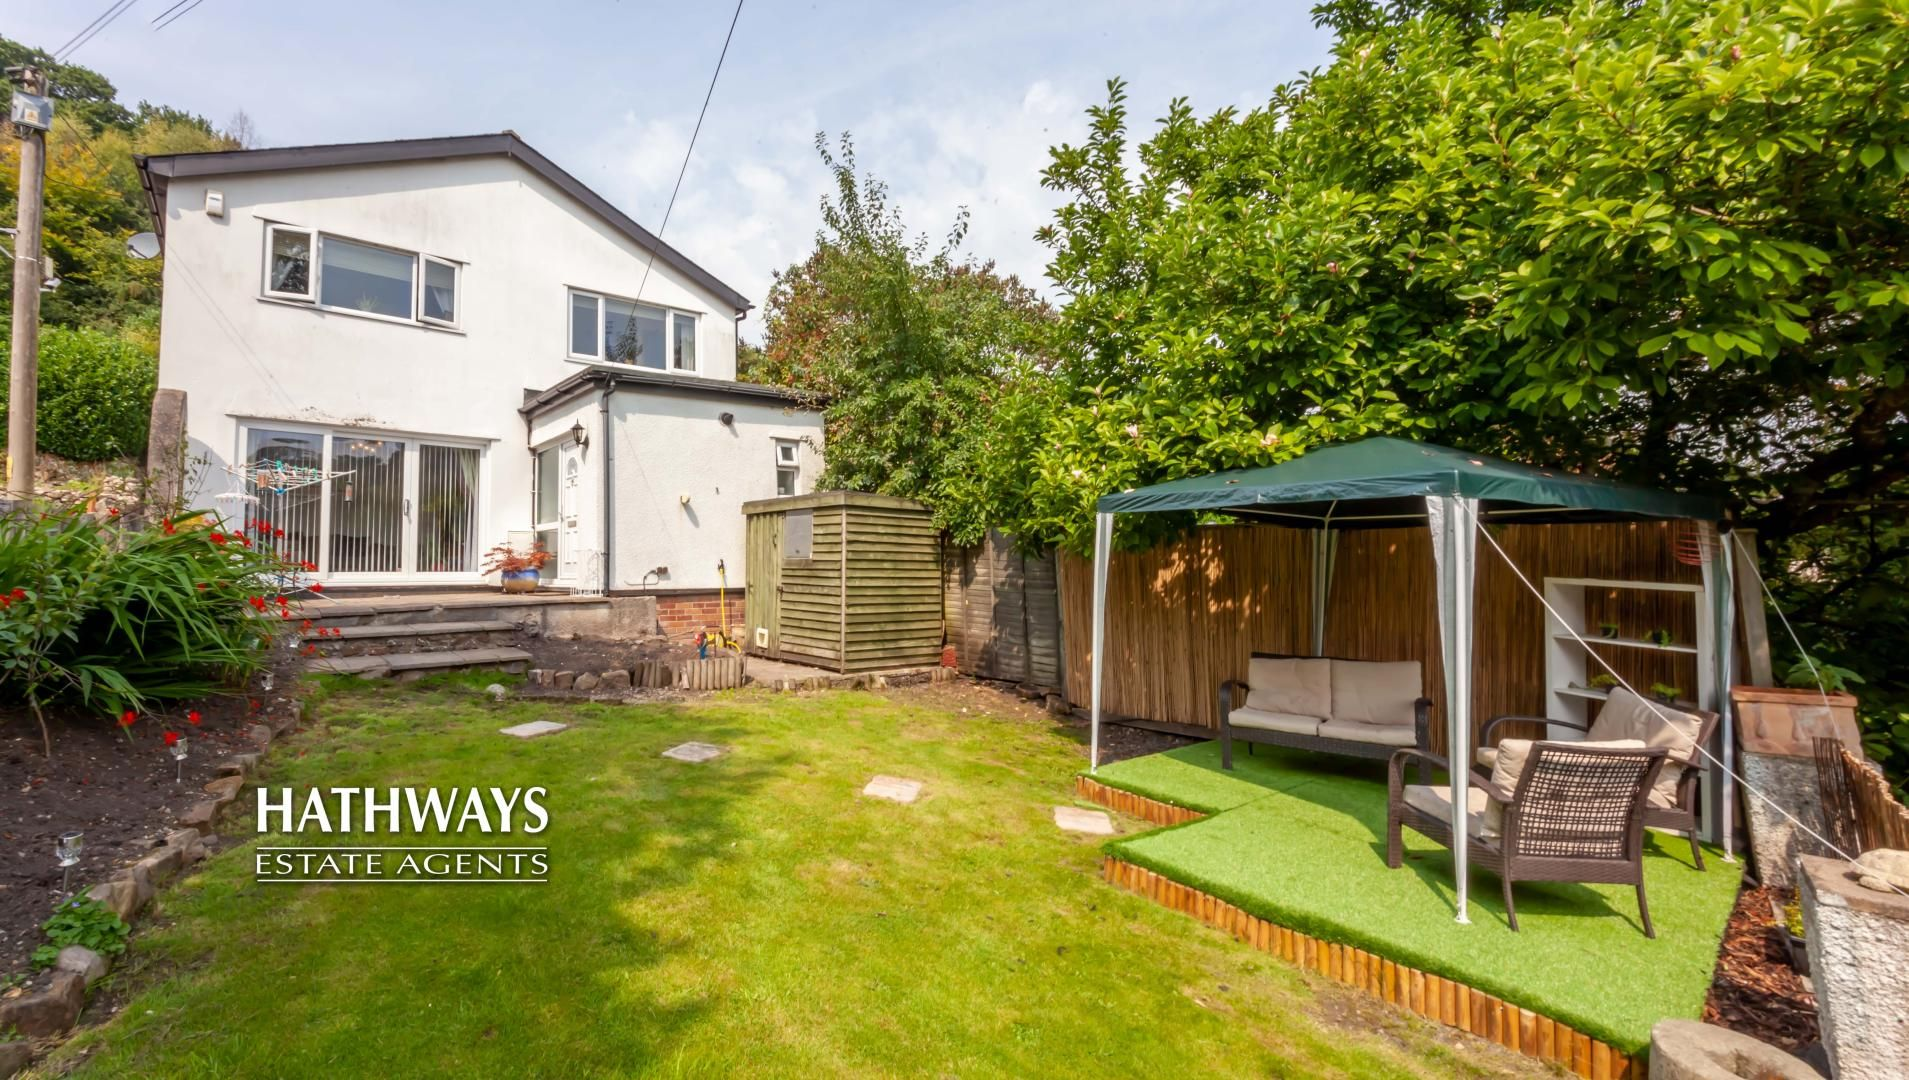 3 bed house for sale in Snatchwood Road, NP4